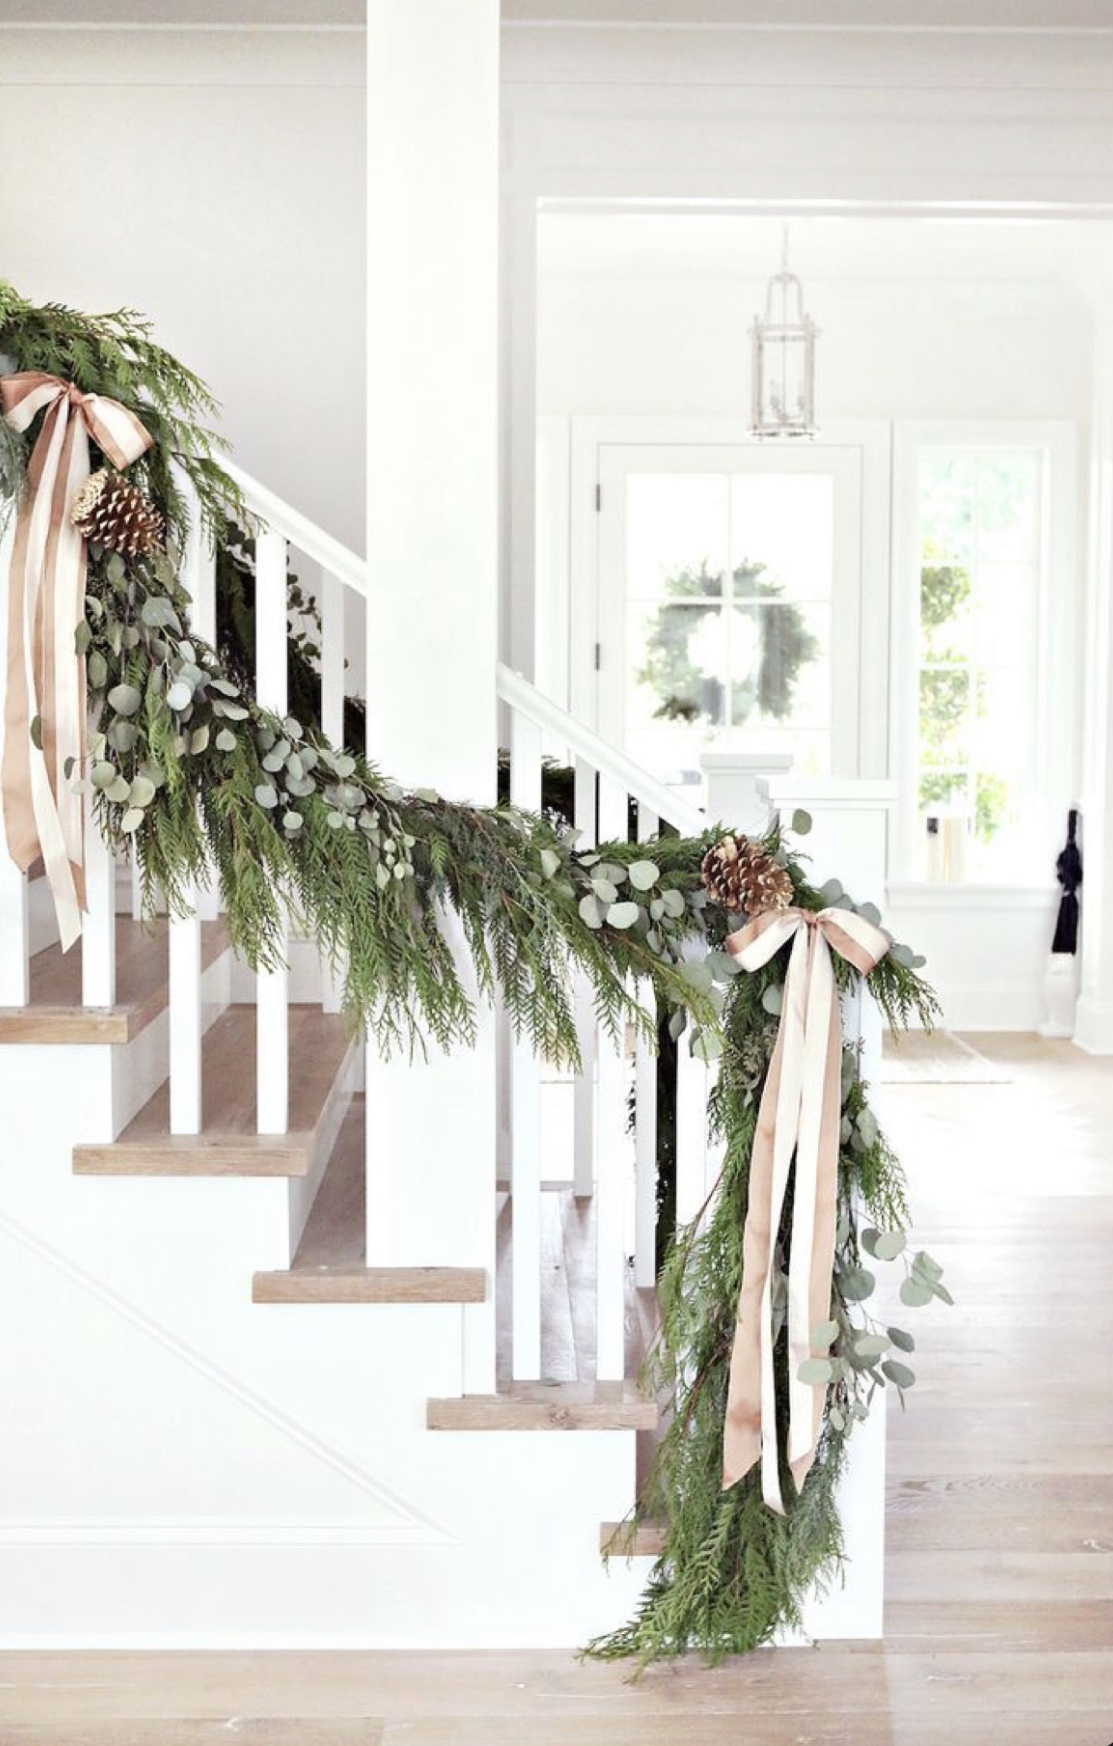 Stunning classic Christmas garland on staircase with eucalyptus and ribbon - Le Cultivateur.